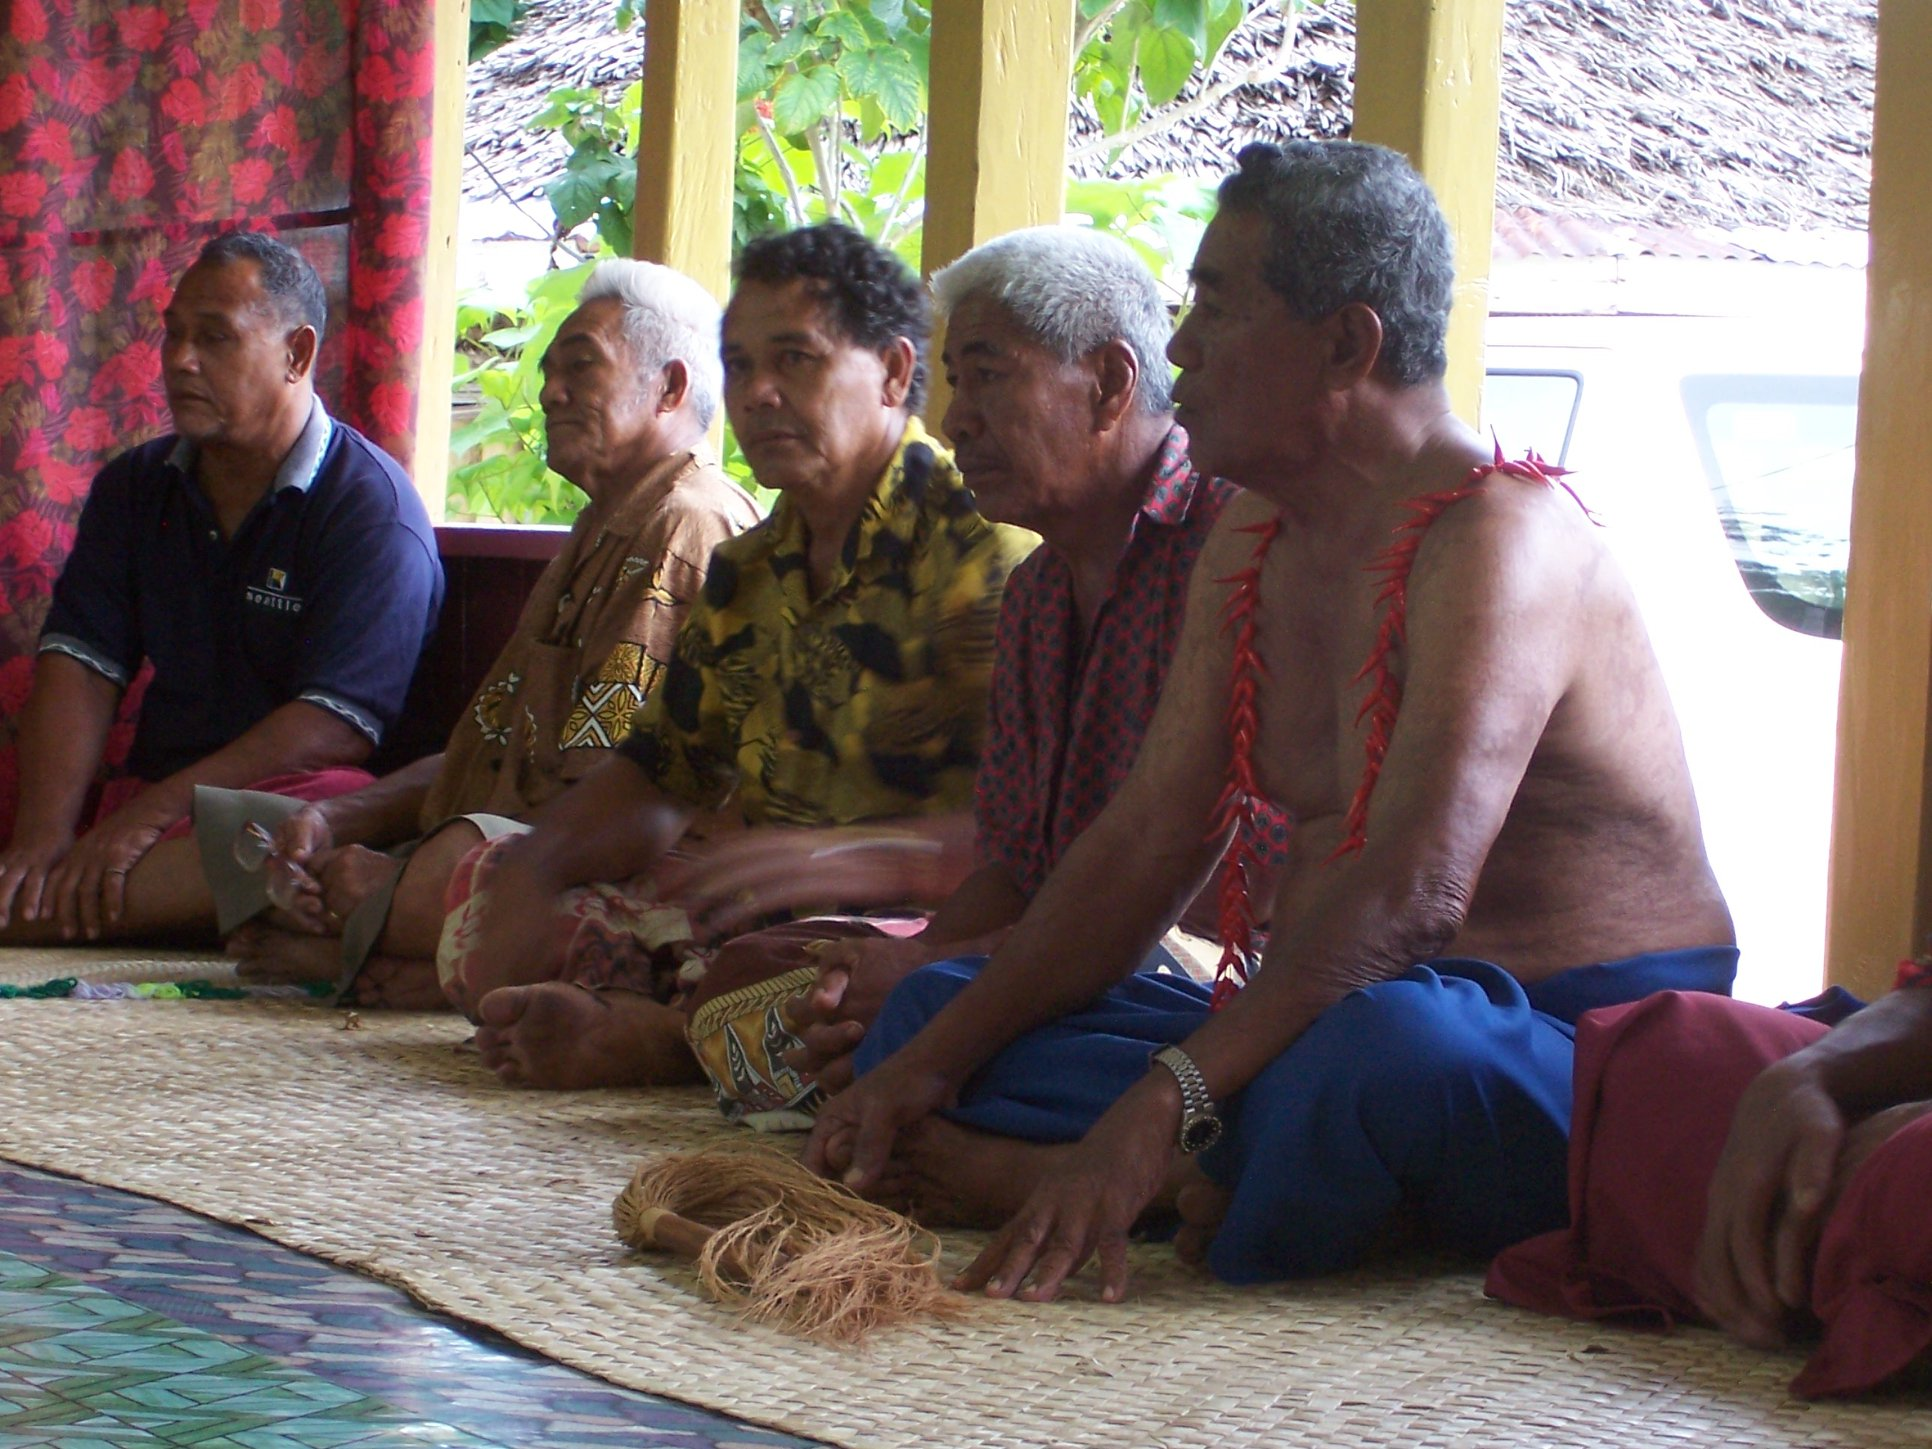 The village chiefs -  The village of Tufutafoe was where Maril's grandfather was born in 1905. All of the people in the village are Afualos. These are some of the distant relatives that serve on the village council who were invited inside the fale, for the ceremony. They were completely comfortable sitting cross-legged on the mats for the lengthy ceremony.